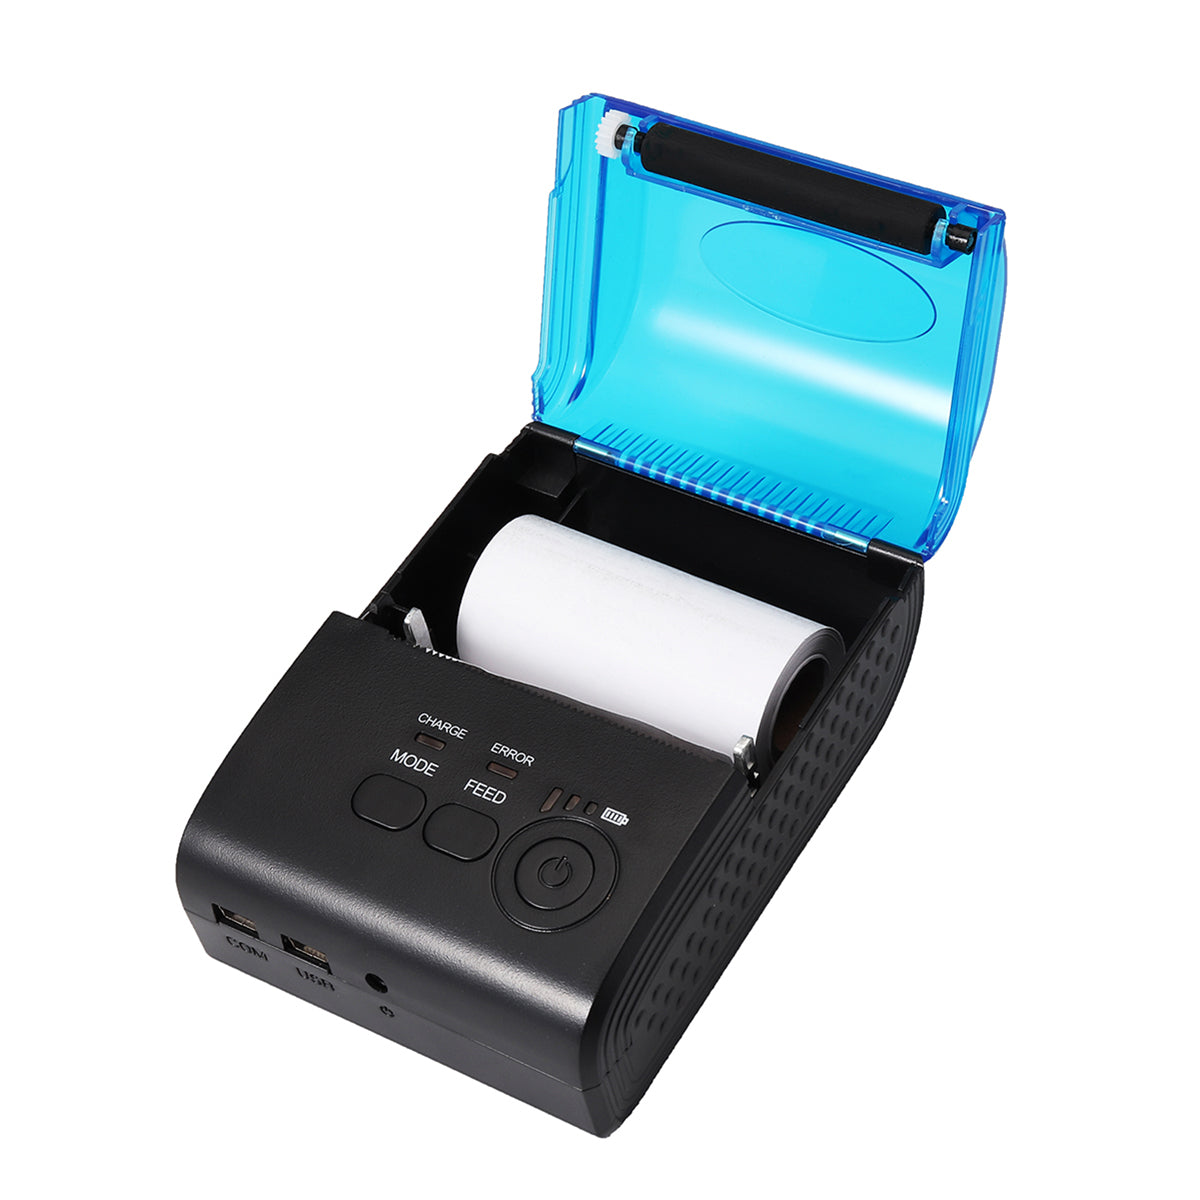 58mm Bluetooth USB Thermal Receipt Printer POS Receipt Ticket Cash Drawer Retail Printer